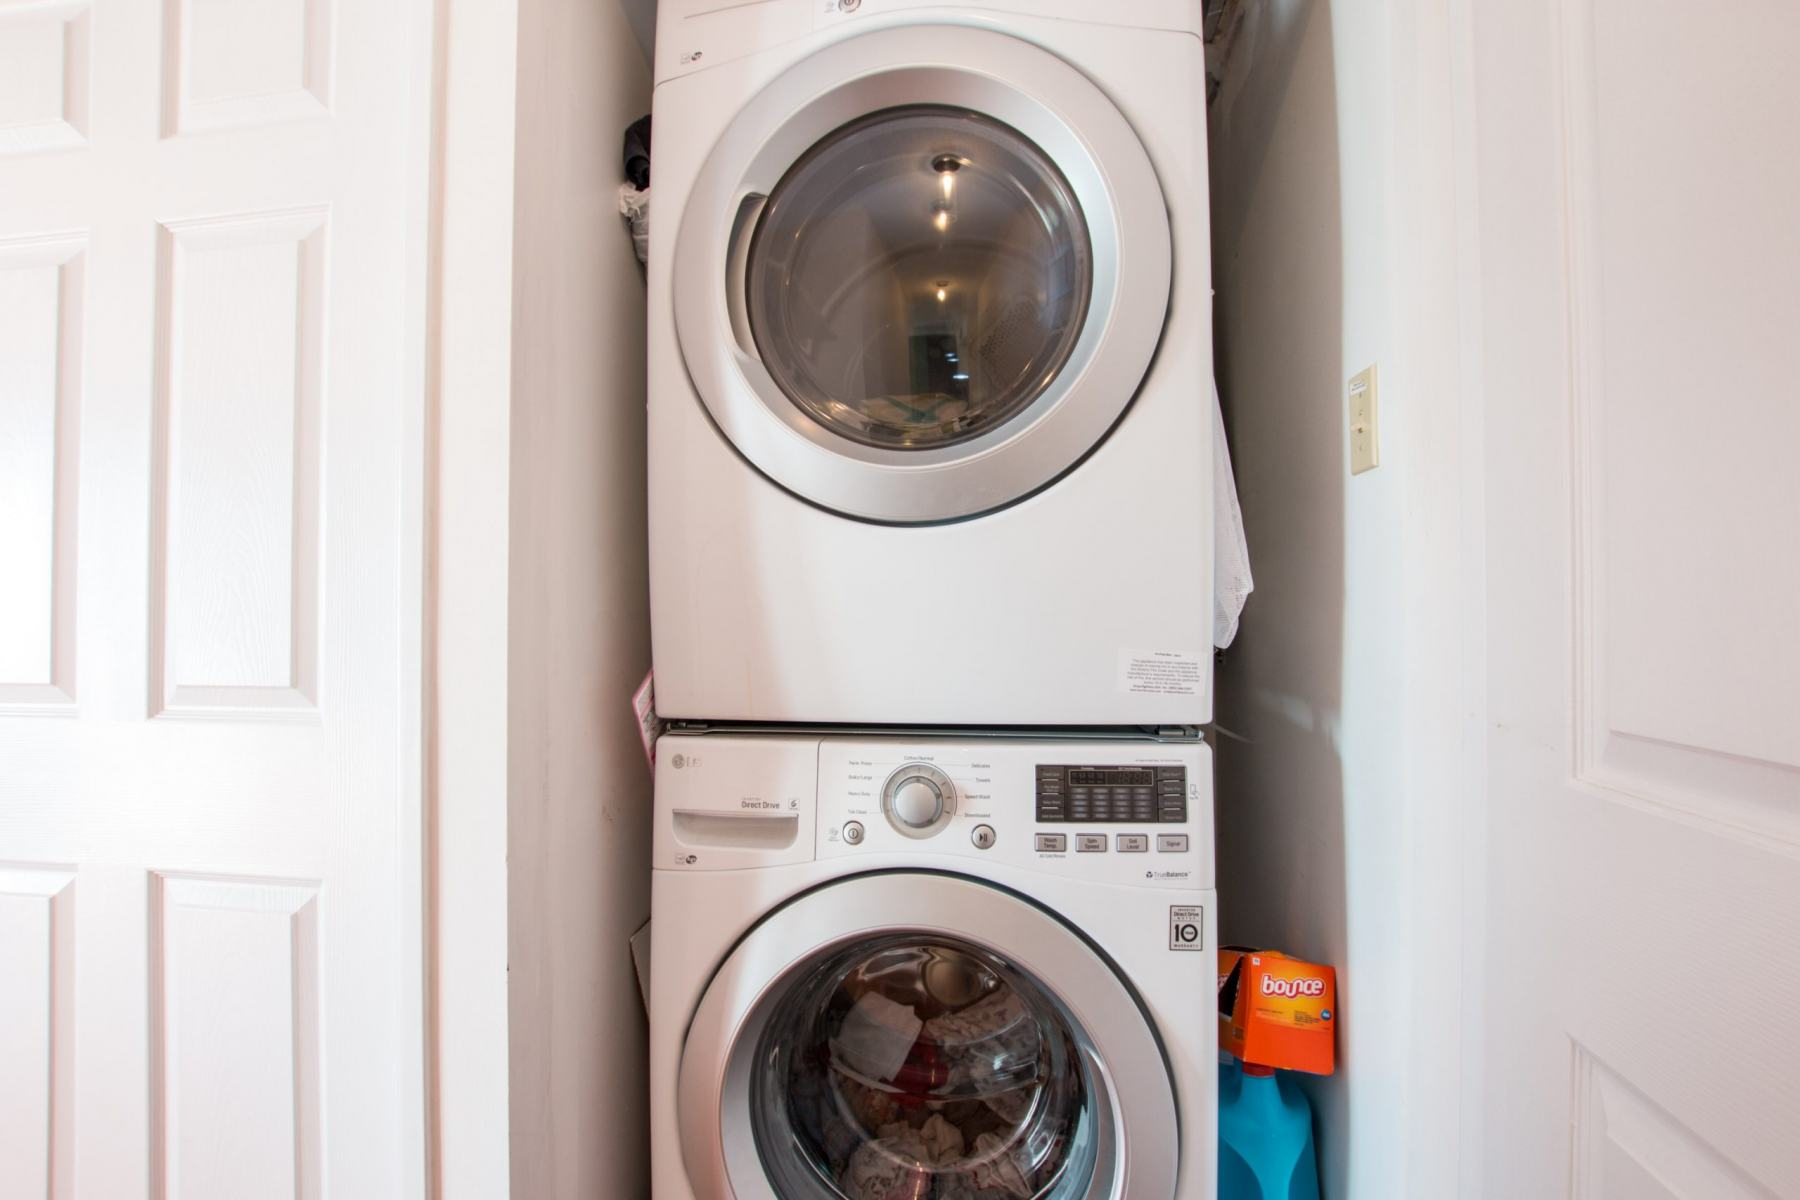 1485 Lakeshore Blvd East - #218 washer & dryer